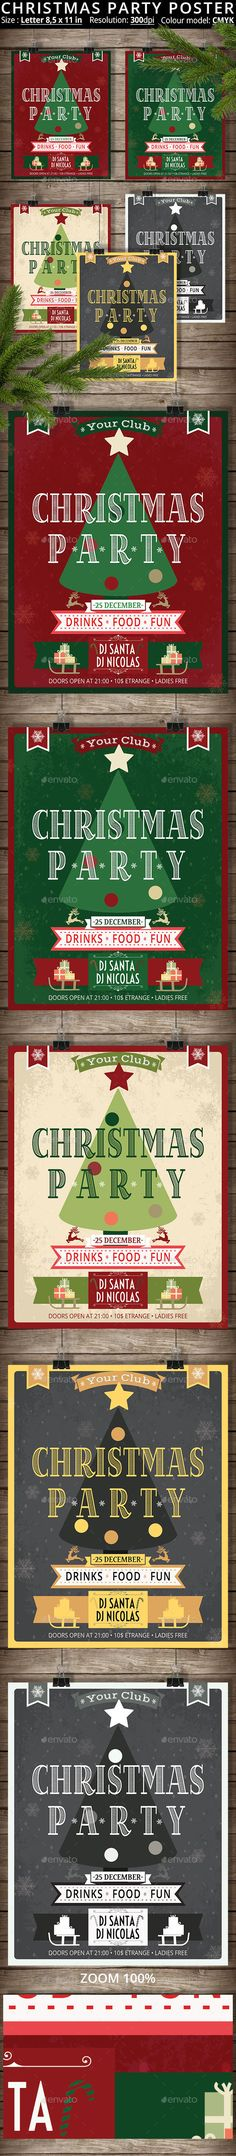 5 Posters Christmas Party Template PSD #design Download: http://graphicriver.net/item/5-posters-christmas-party/13339207?ref=ksioks